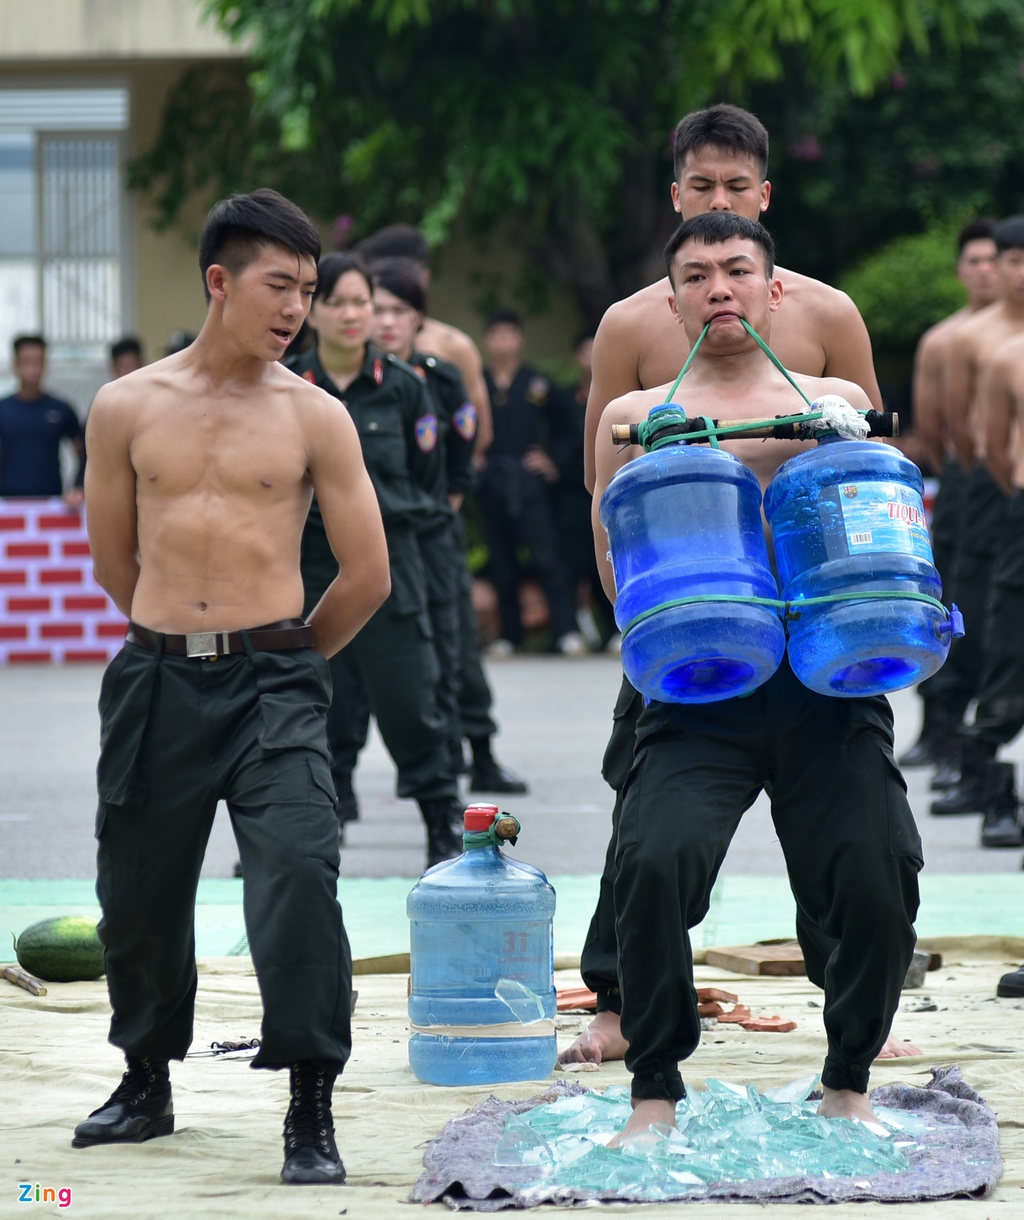 canh sat tuong lai bieu dien vo thuat anh 7